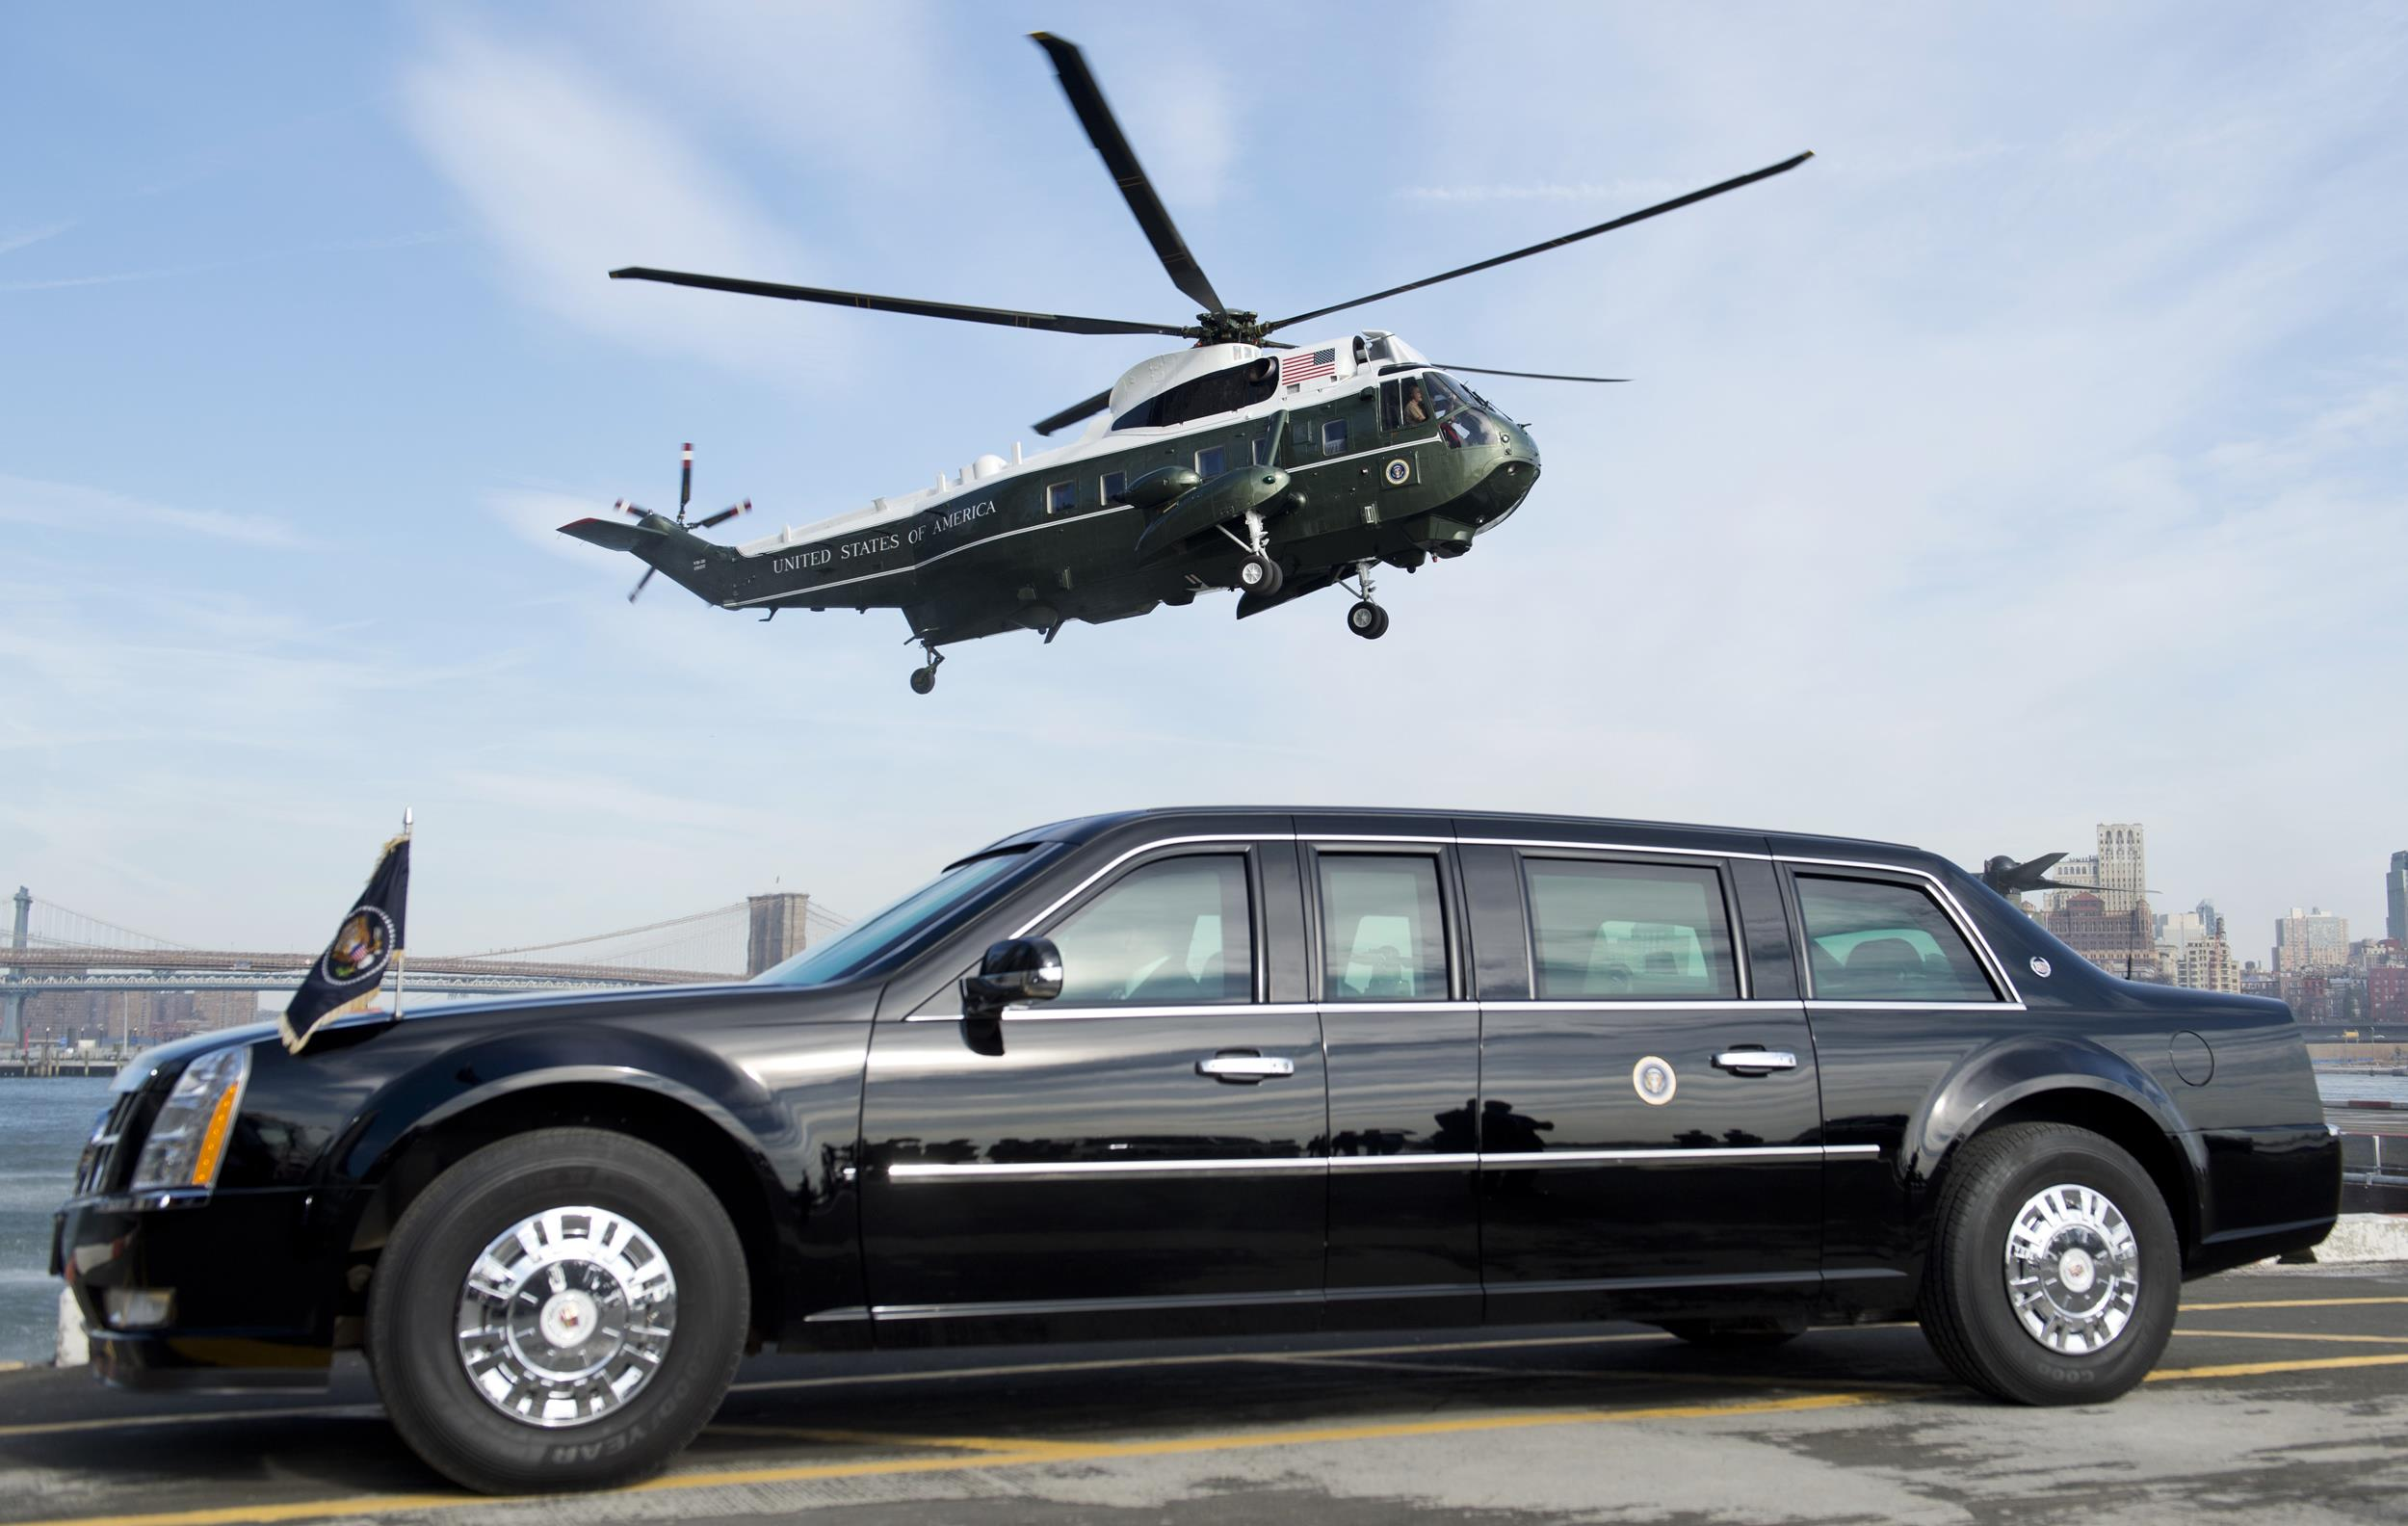 Image: Marine One helicopter, carrying US President Barack Obama, prepares to land next to the Presidential limousine, known as